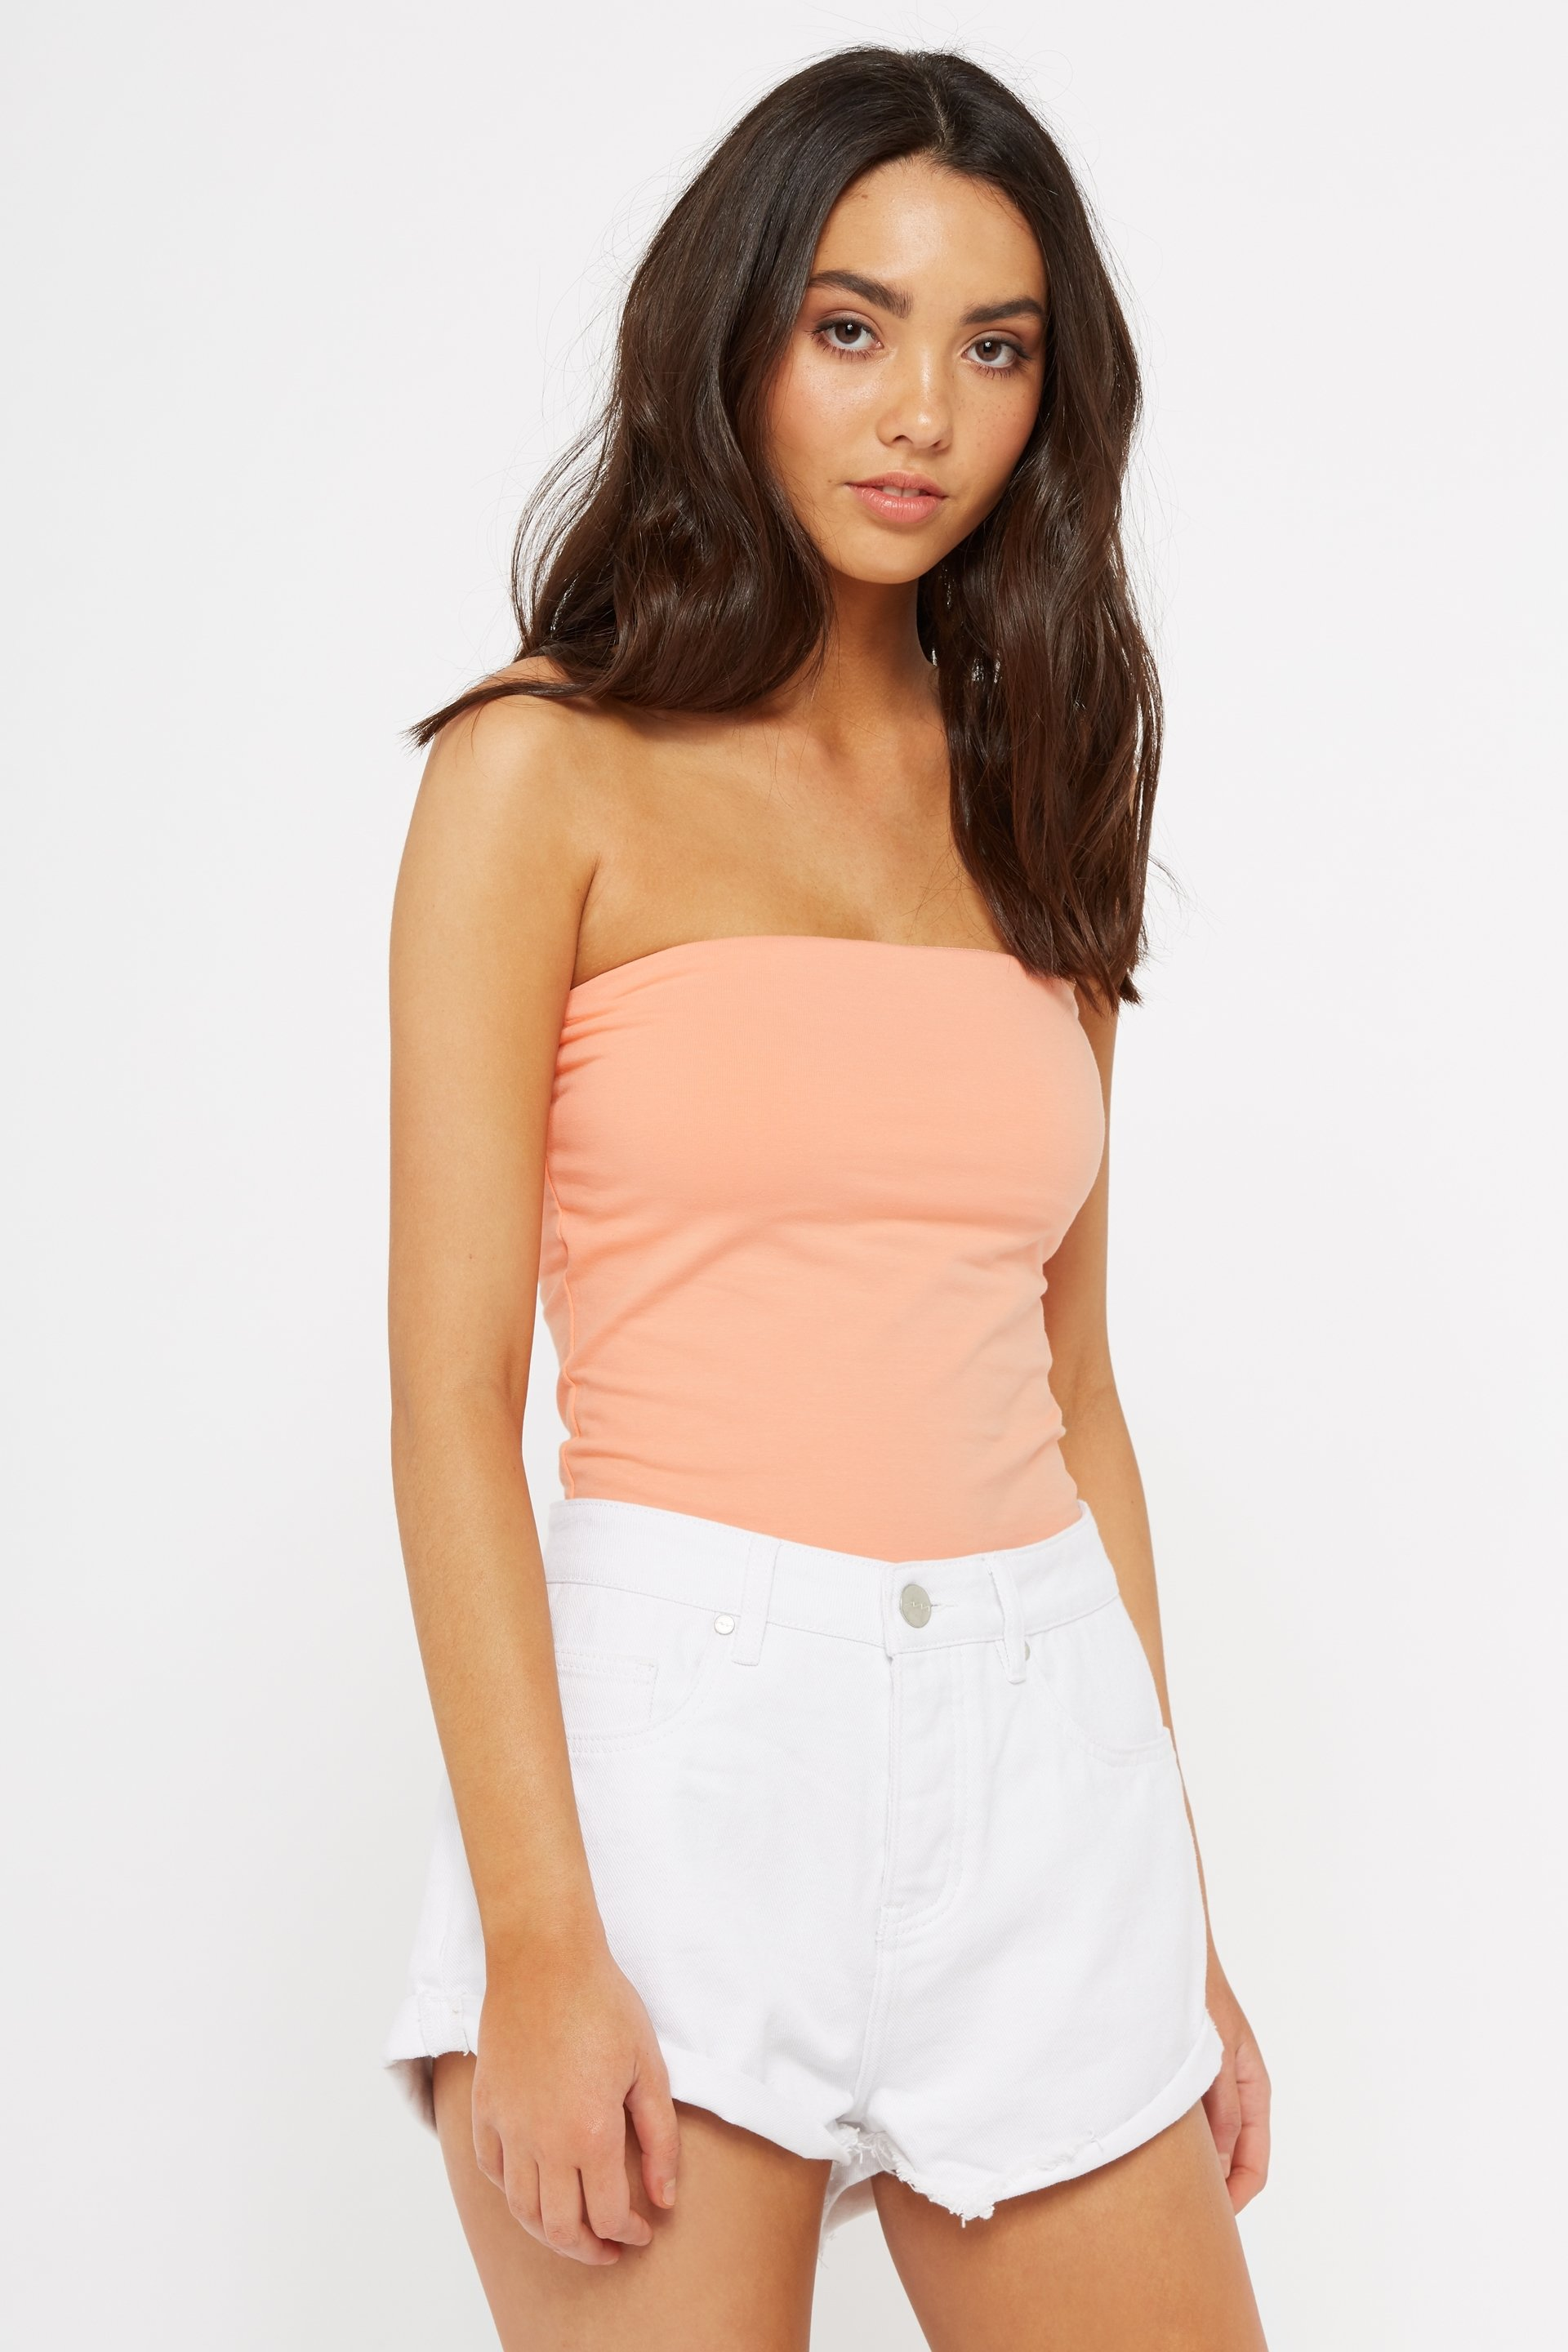 Factorie - Tube Bandeau - Candlelight peach 9352403124489